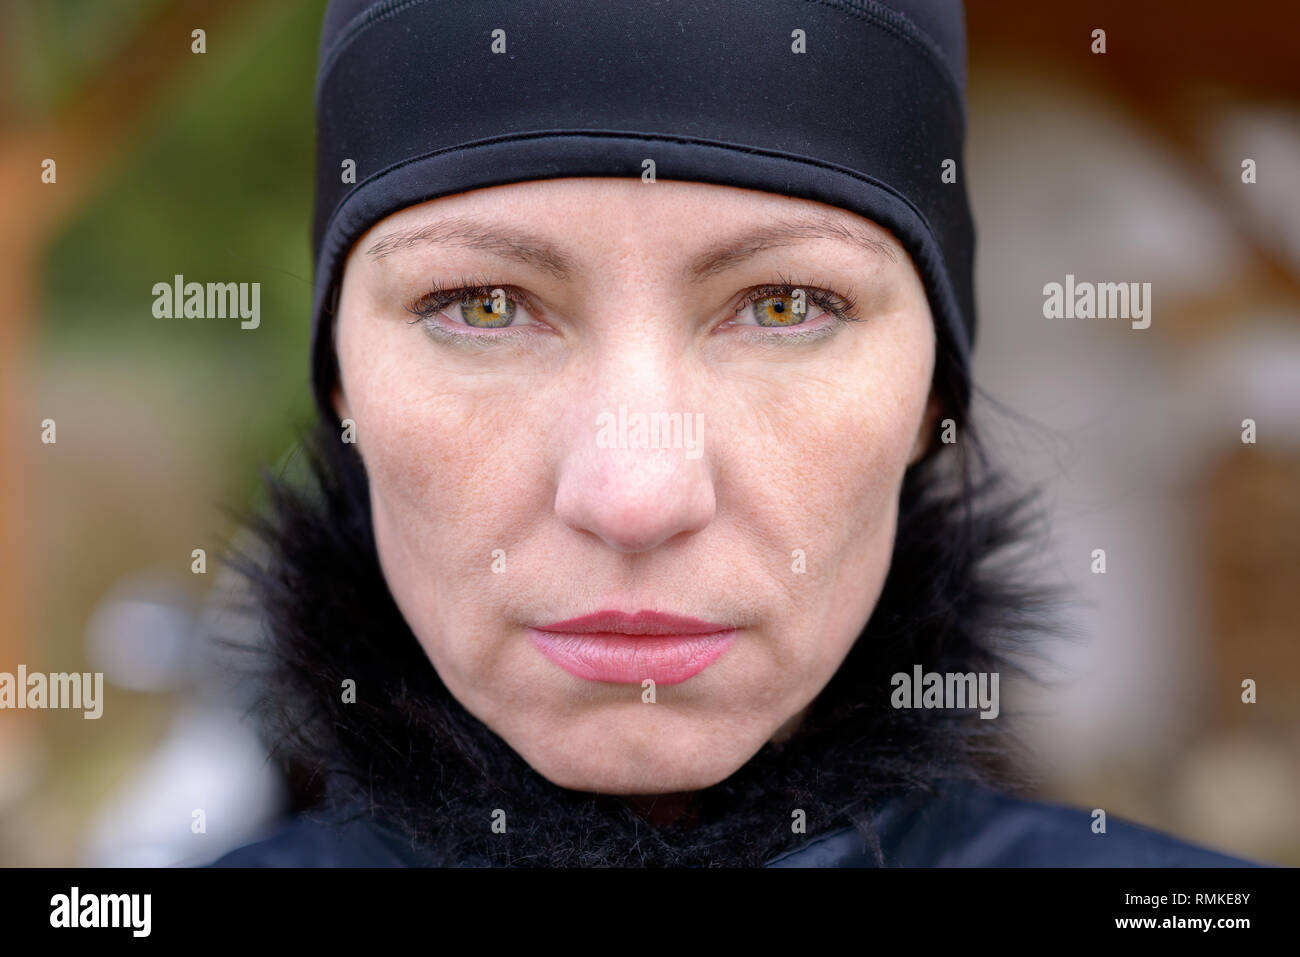 Attractive mature woman wearing a black winter hat staring at the camera with a penetrating look and deadpan expression - Stock Image